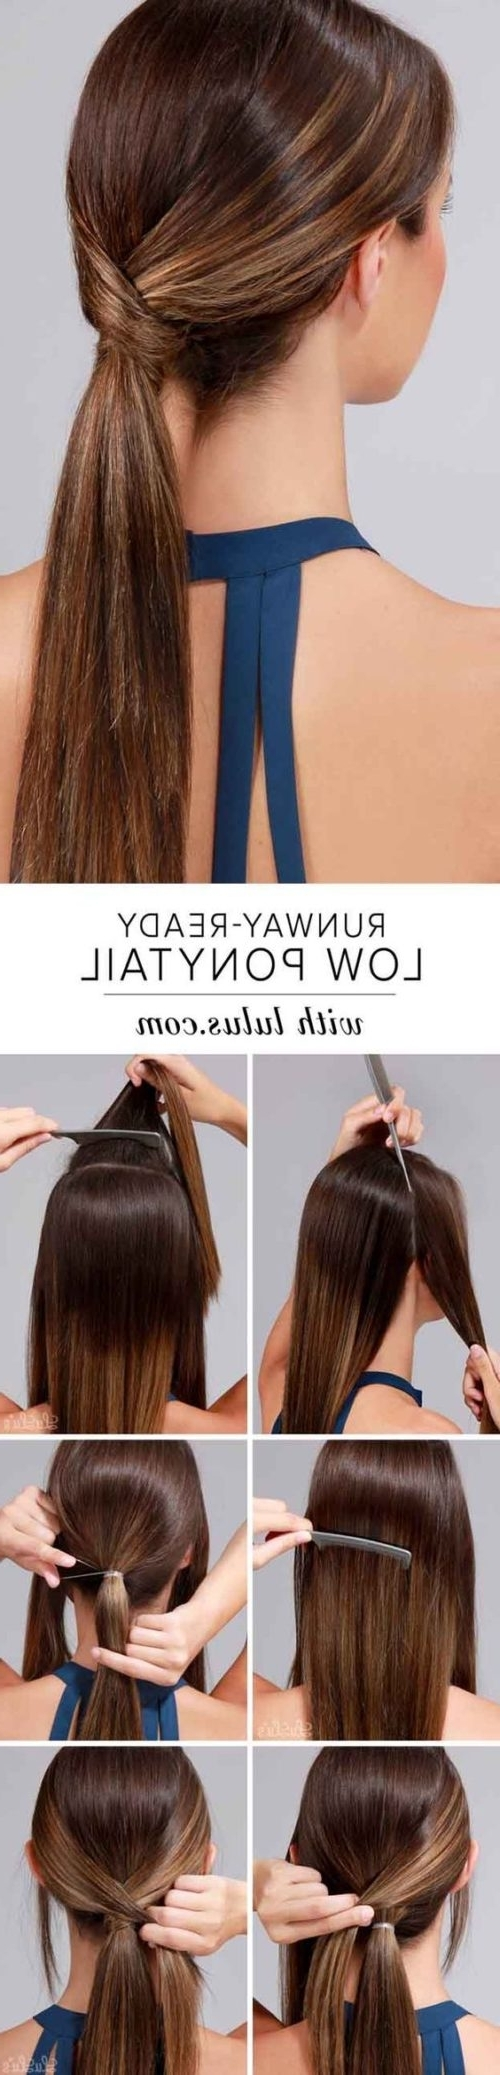 16 Best Ponytail Tutorials That Will Make You A Pony Hairstyling Expert! With Regard To Most Up To Date Knotted Ponytail Hairstyles (View 18 of 20)